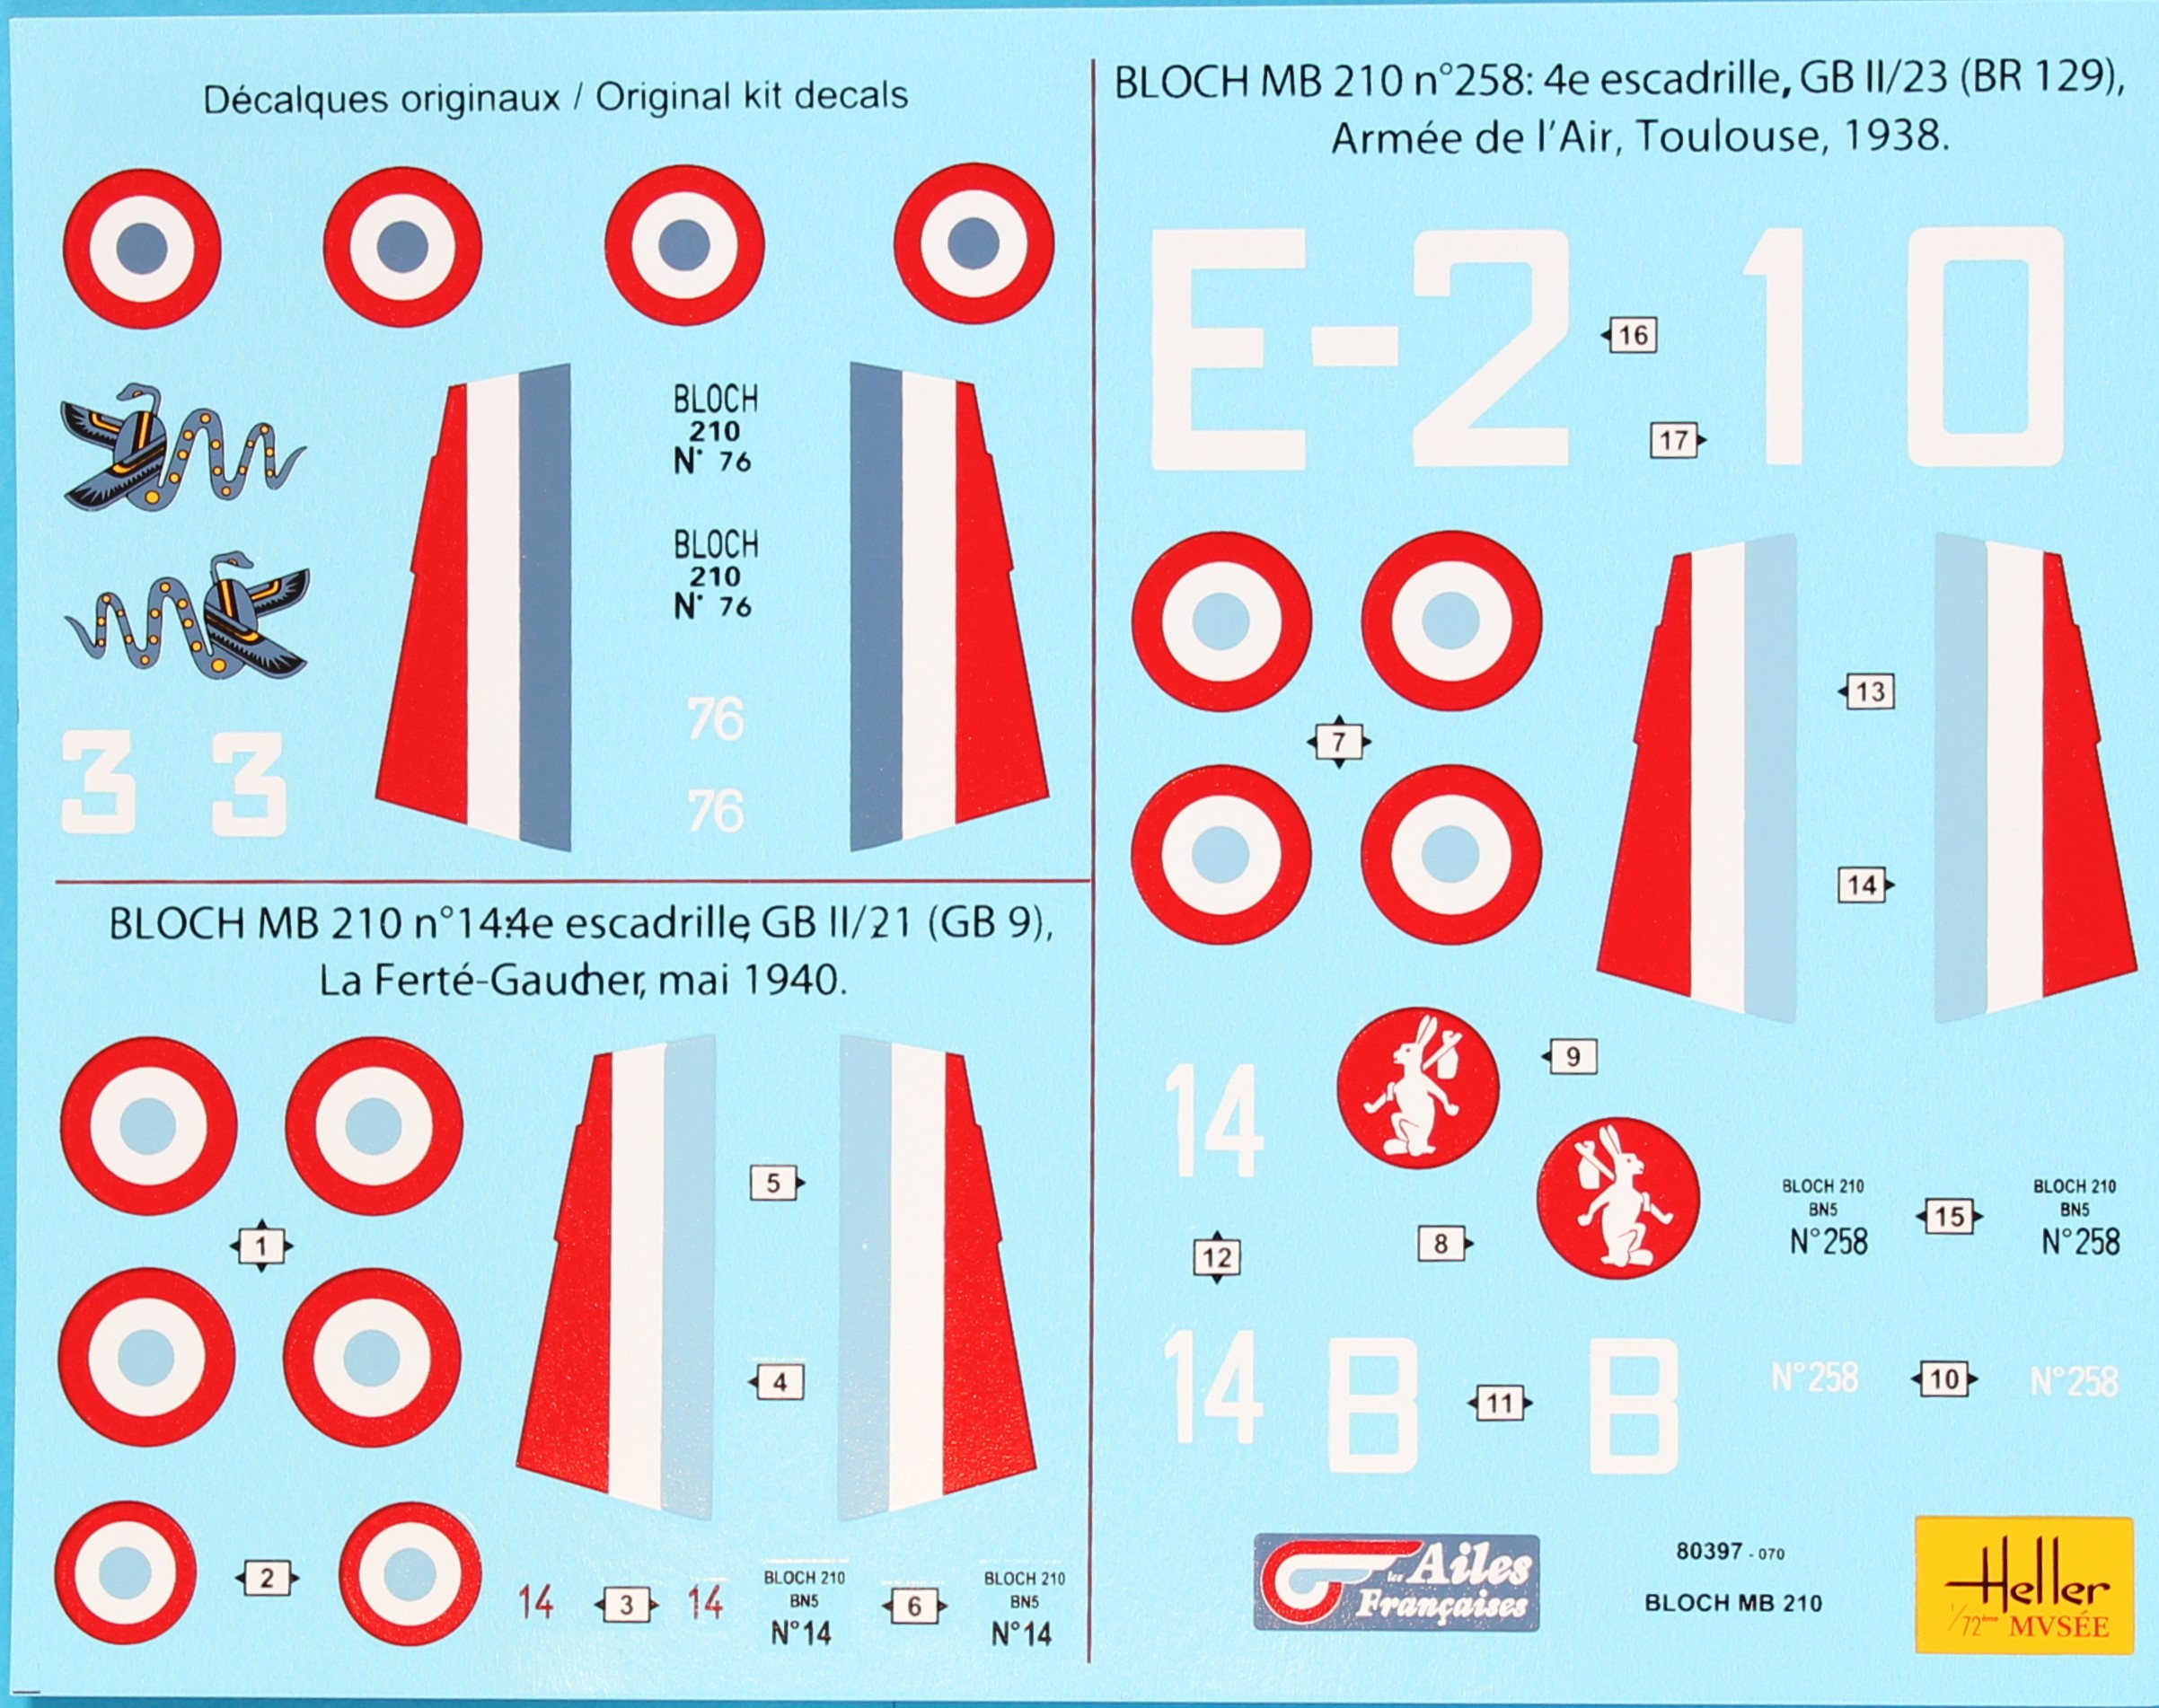 Heller-Bloch-210-Decals Kit-Archäologie: Bloch MB 210 in 1:72 von Heller